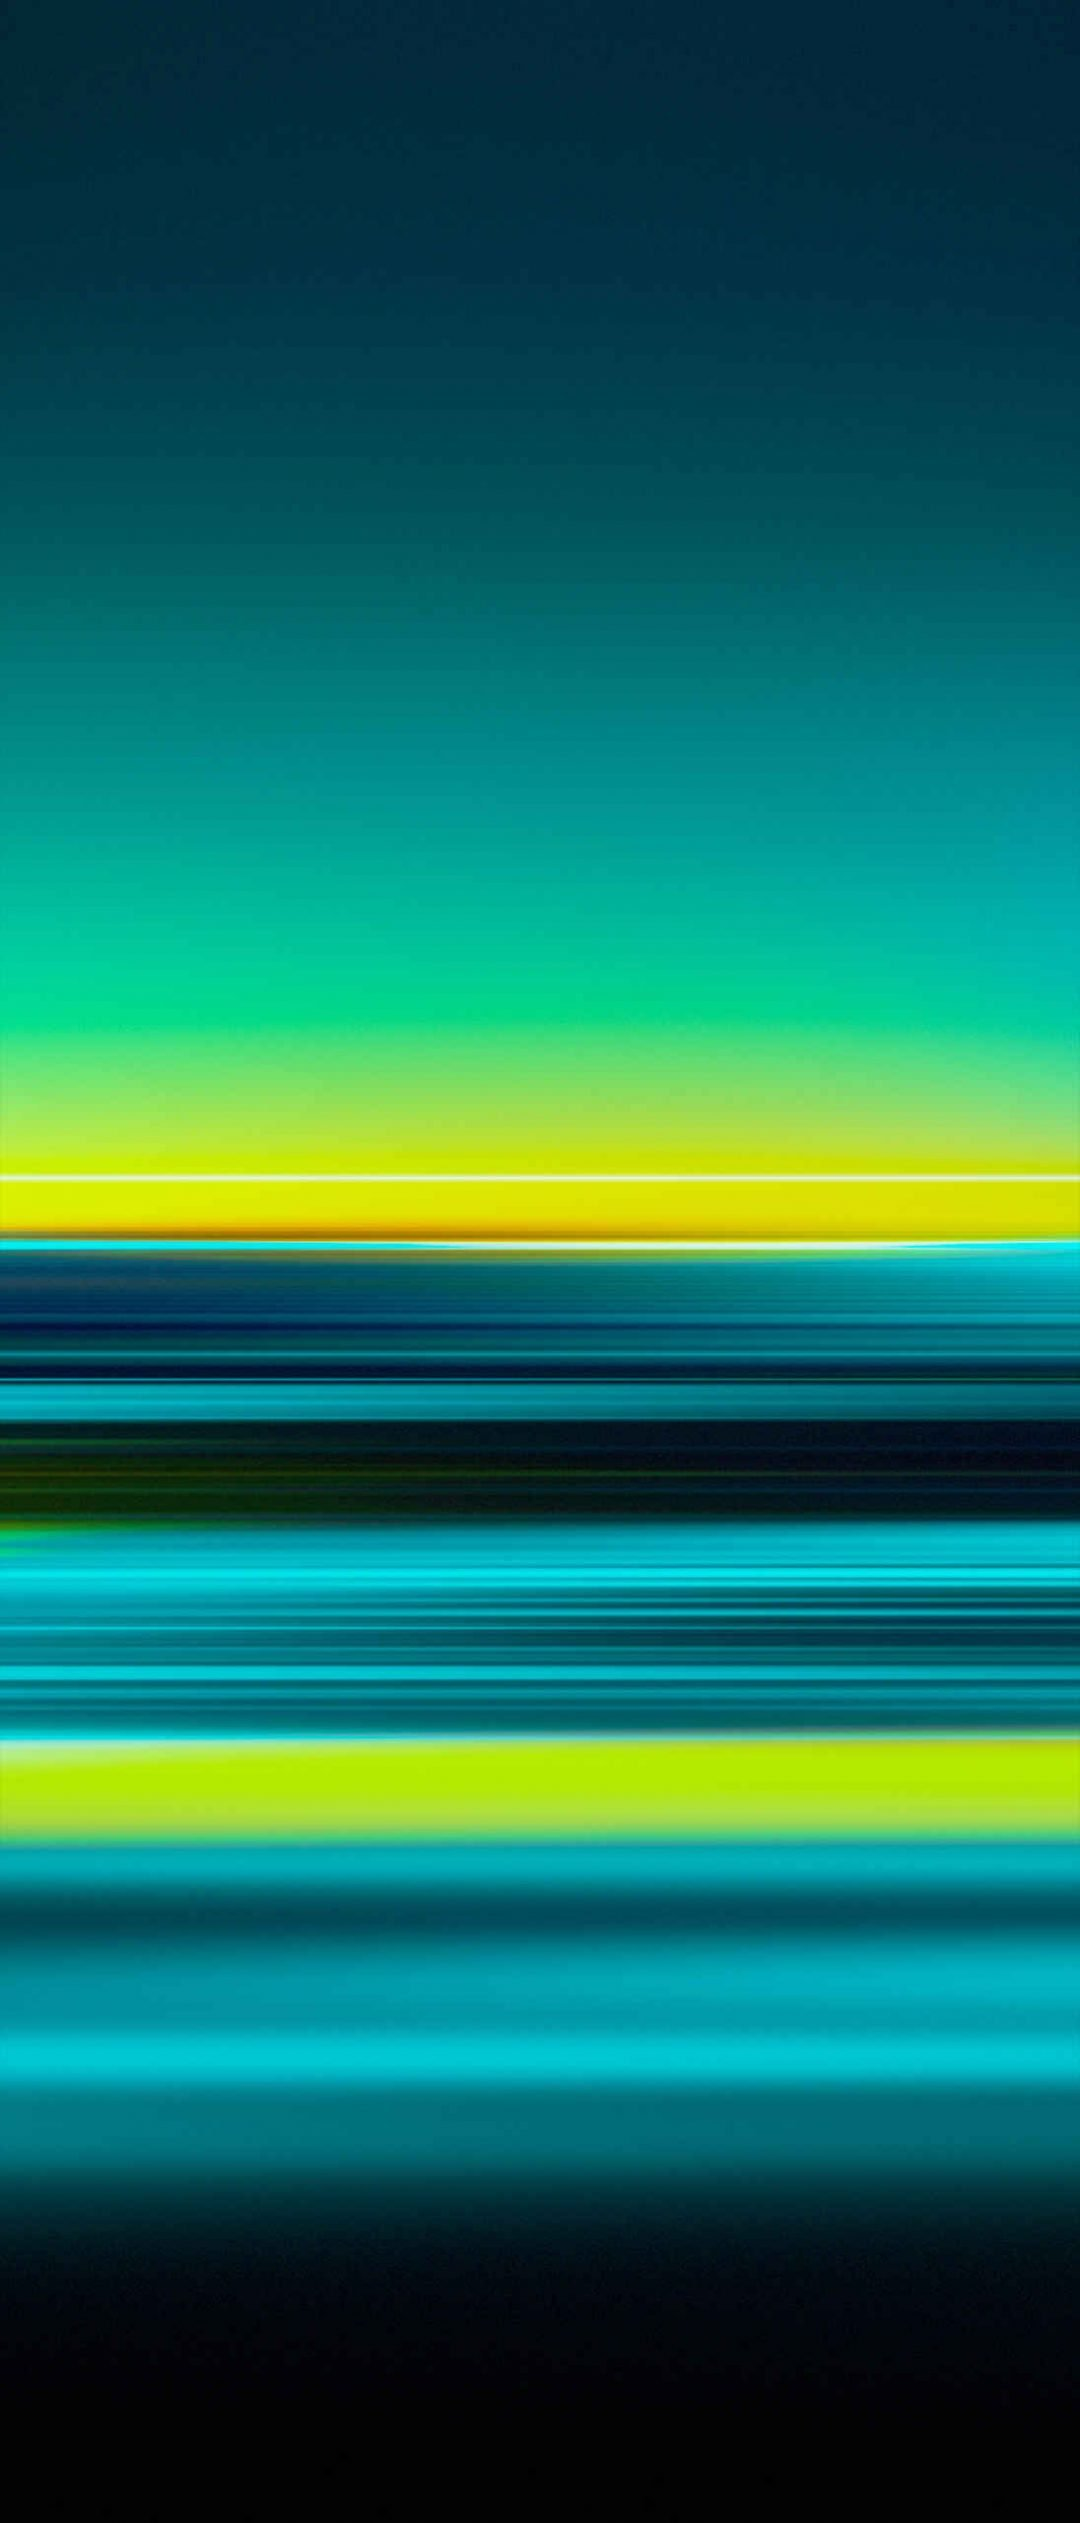 Sony Xperia 1 Stock Wallpapers - Download | DroidViews